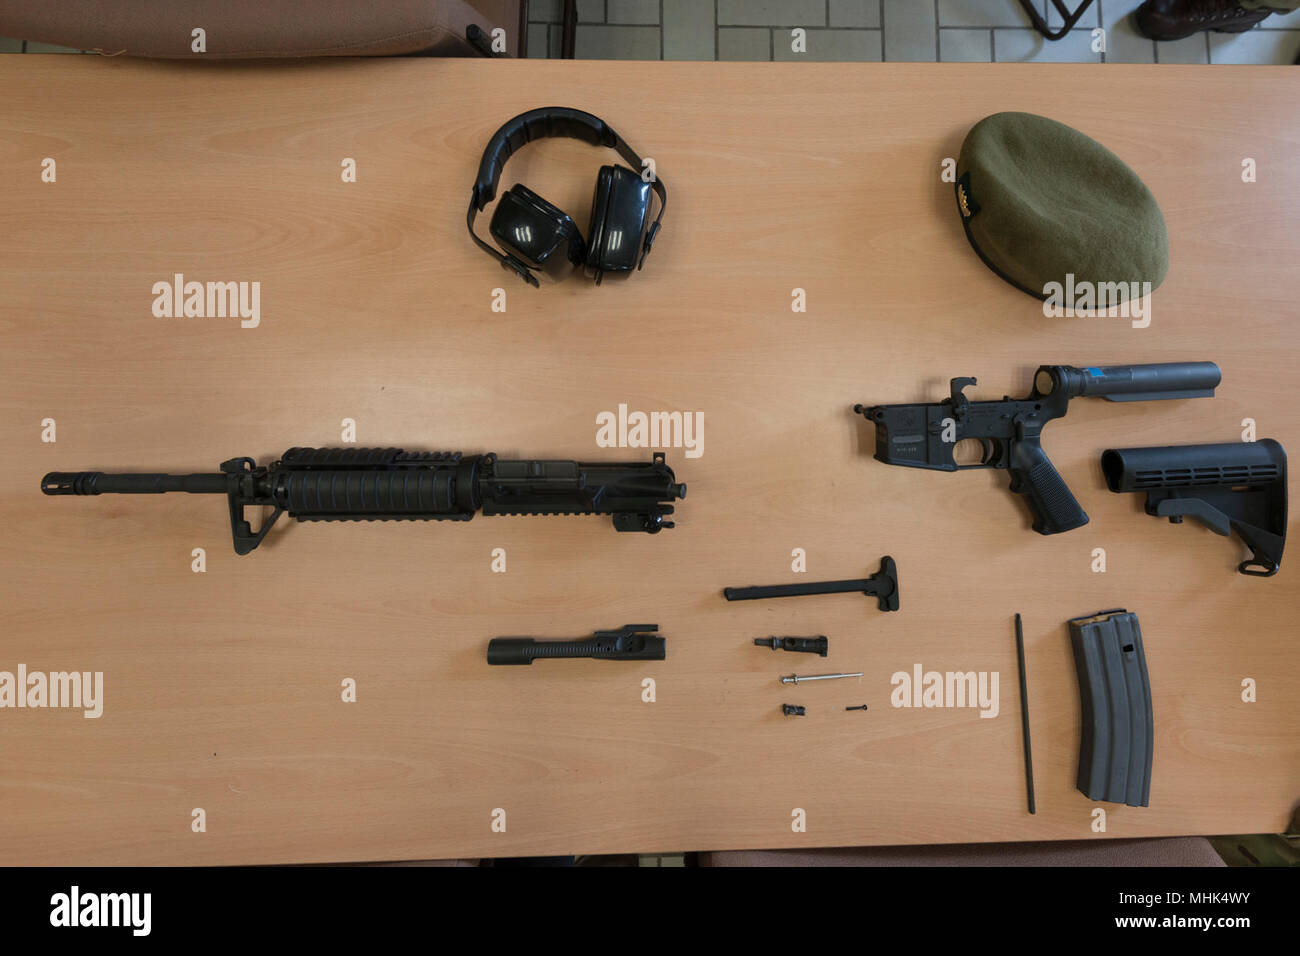 u s m4 carbine is shown in its disassembled state as members of the